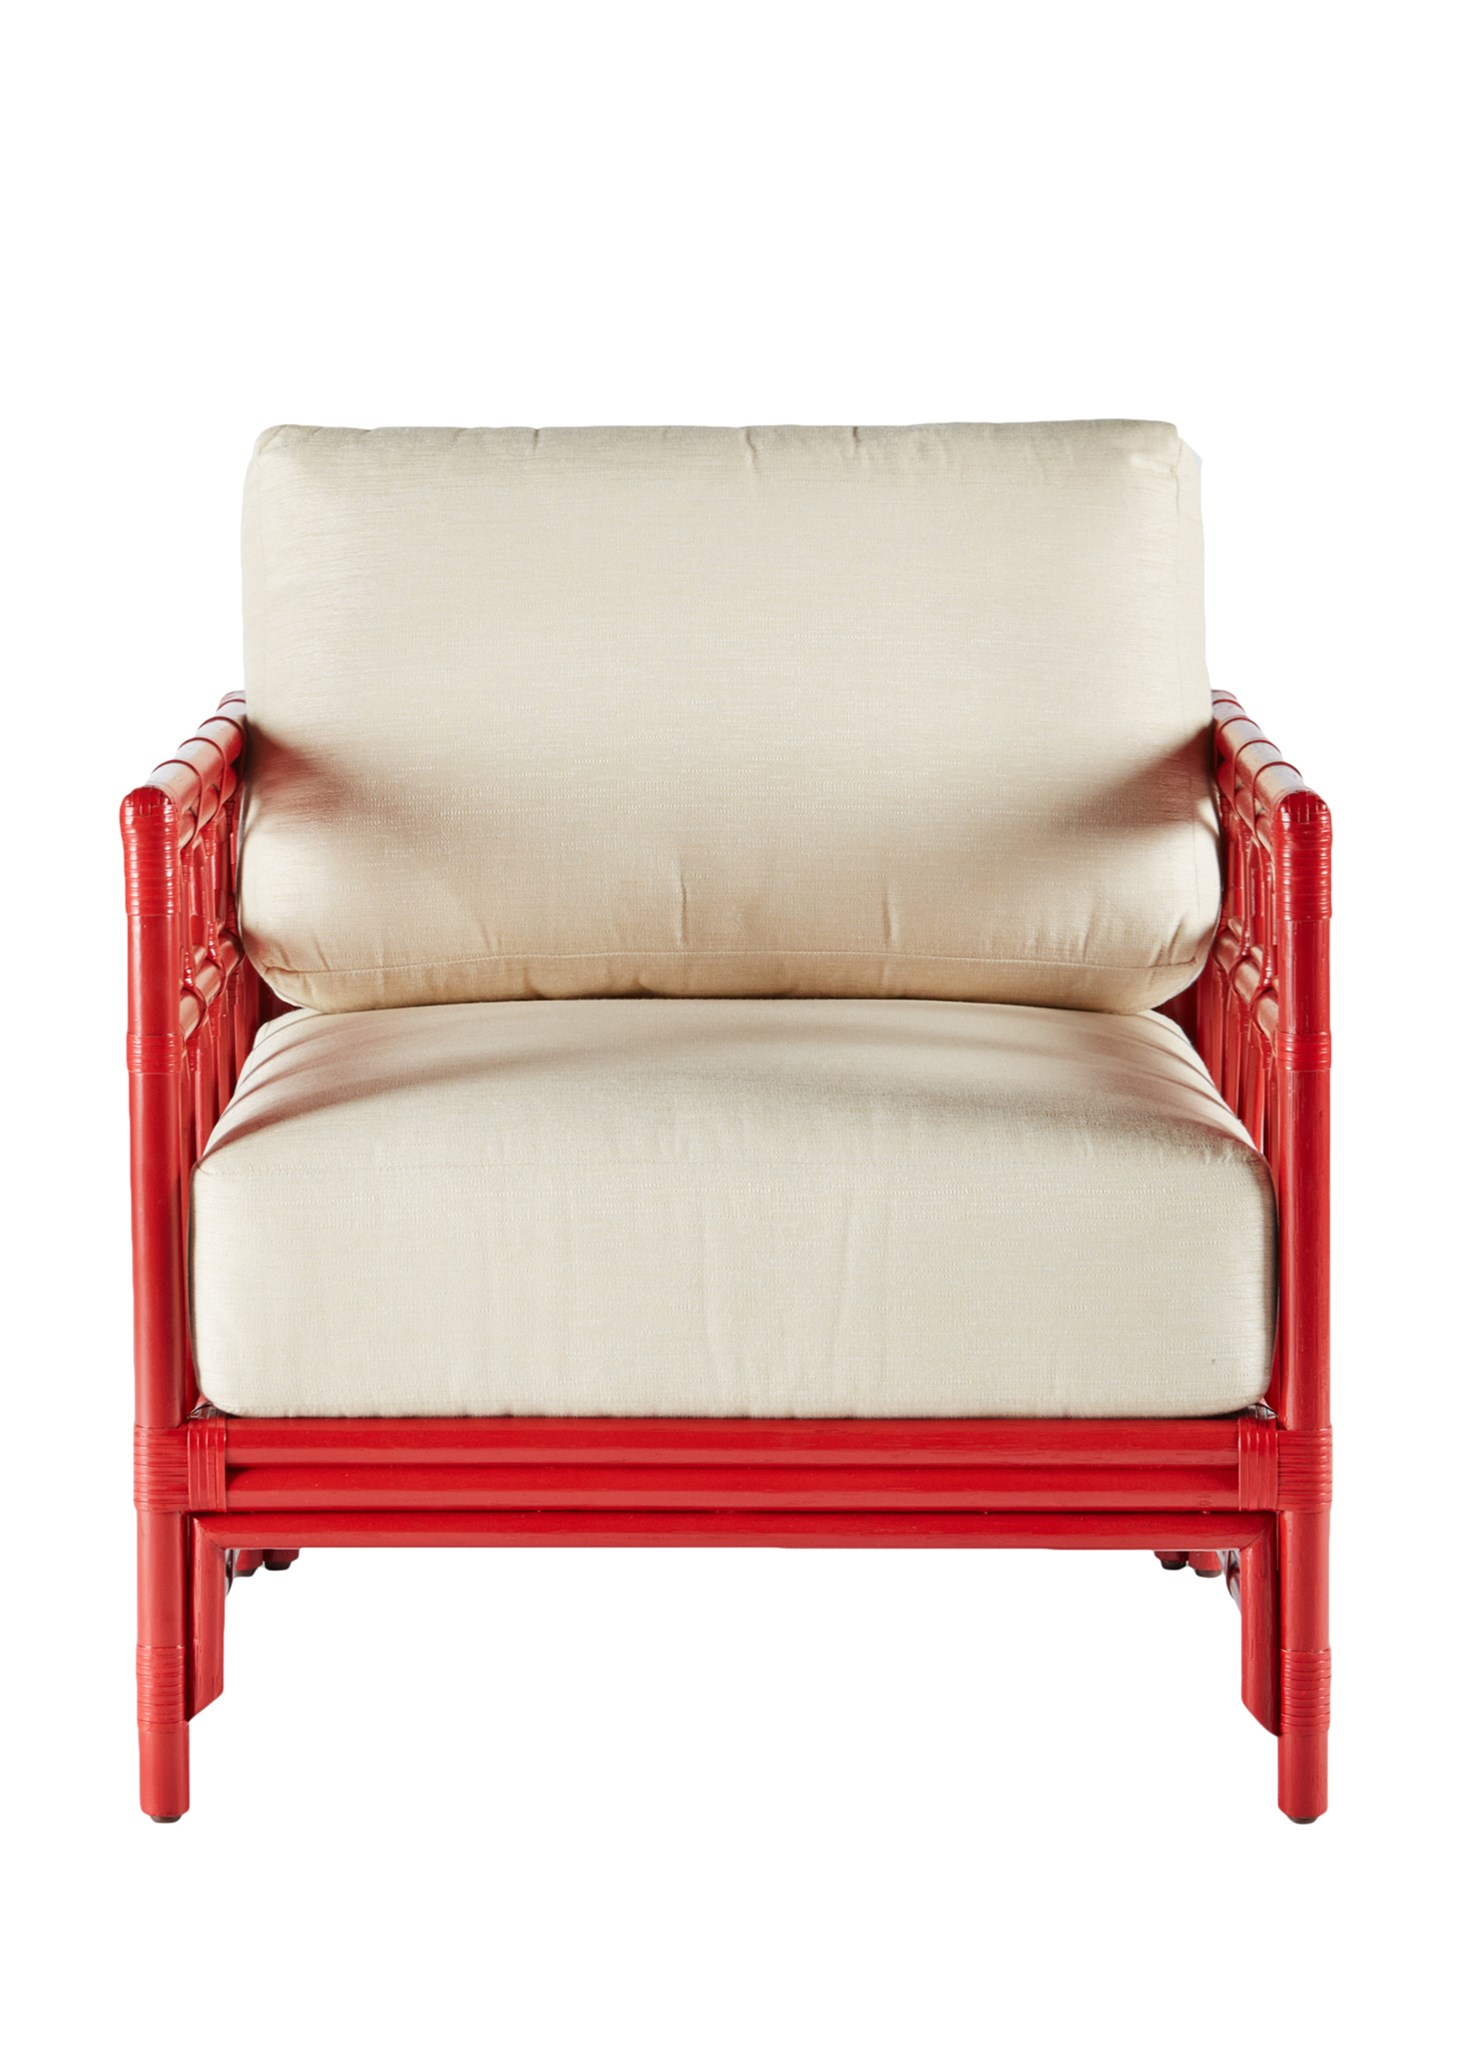 Regeant Lounge Chair, Rattan   Antique Red